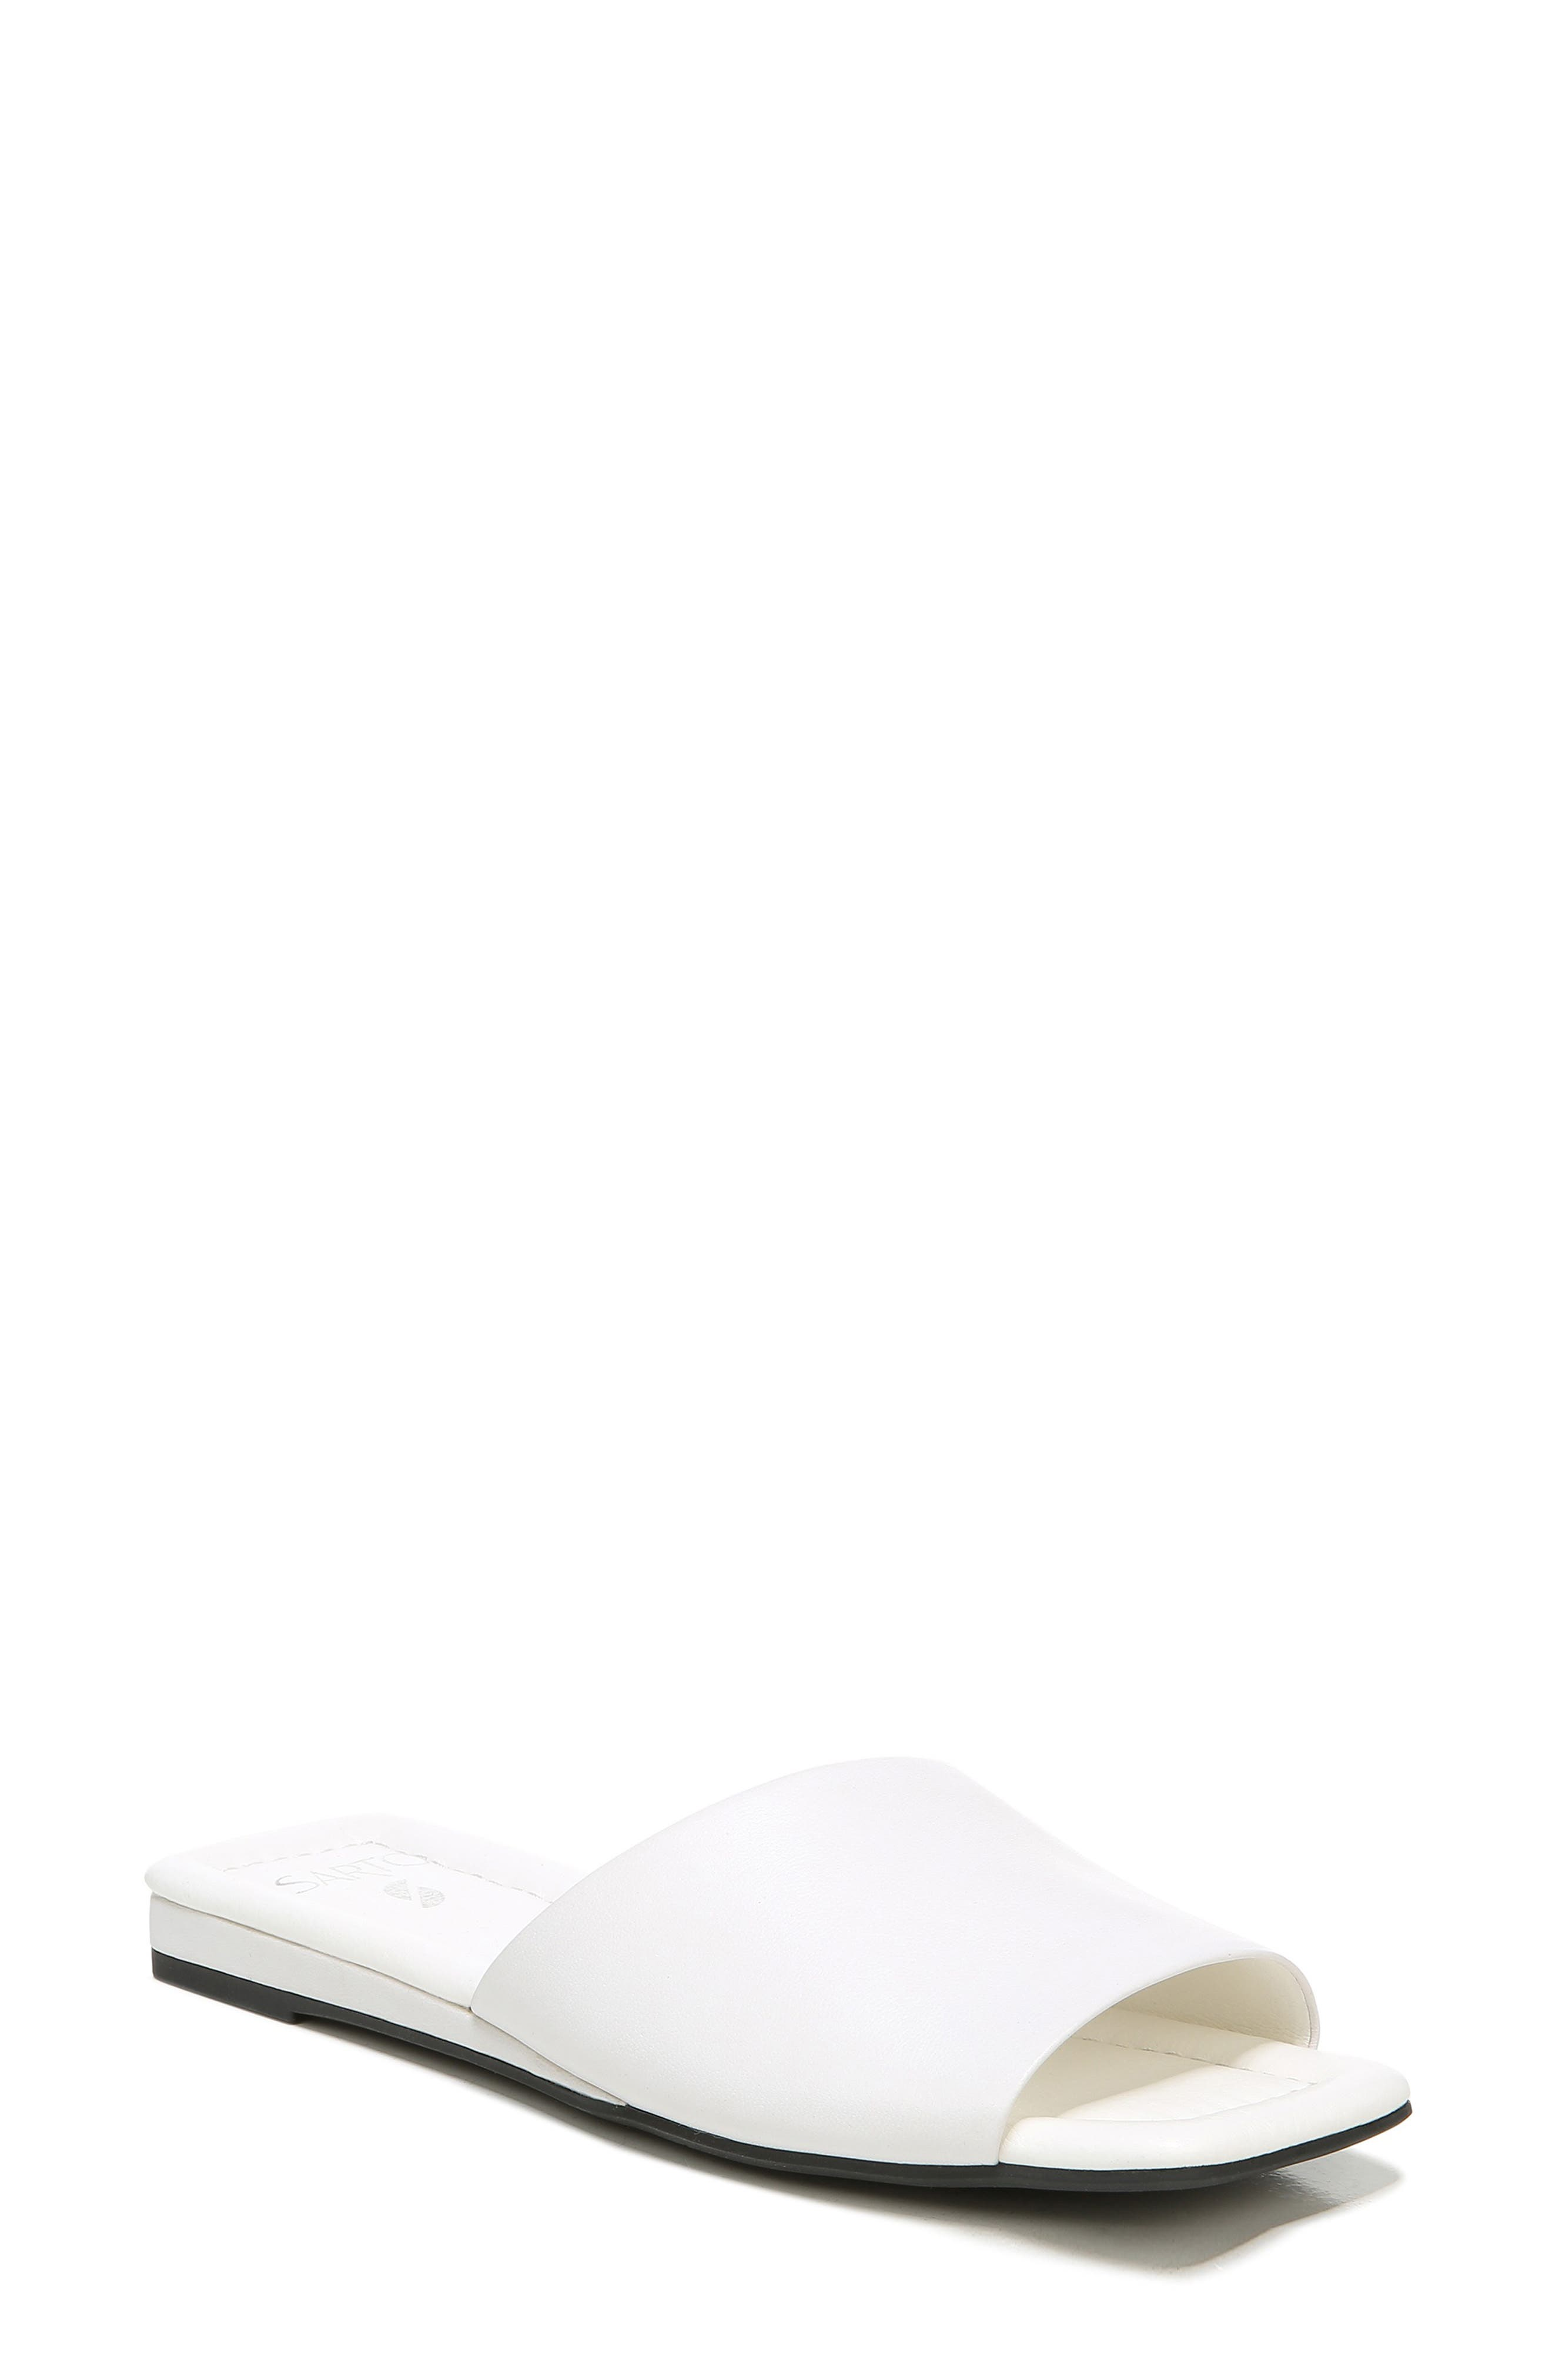 Bordo Slide Sandal by Nordstrom, available on nordstrom.com for $7008.64 Gigi Hadid Shoes Exact Product